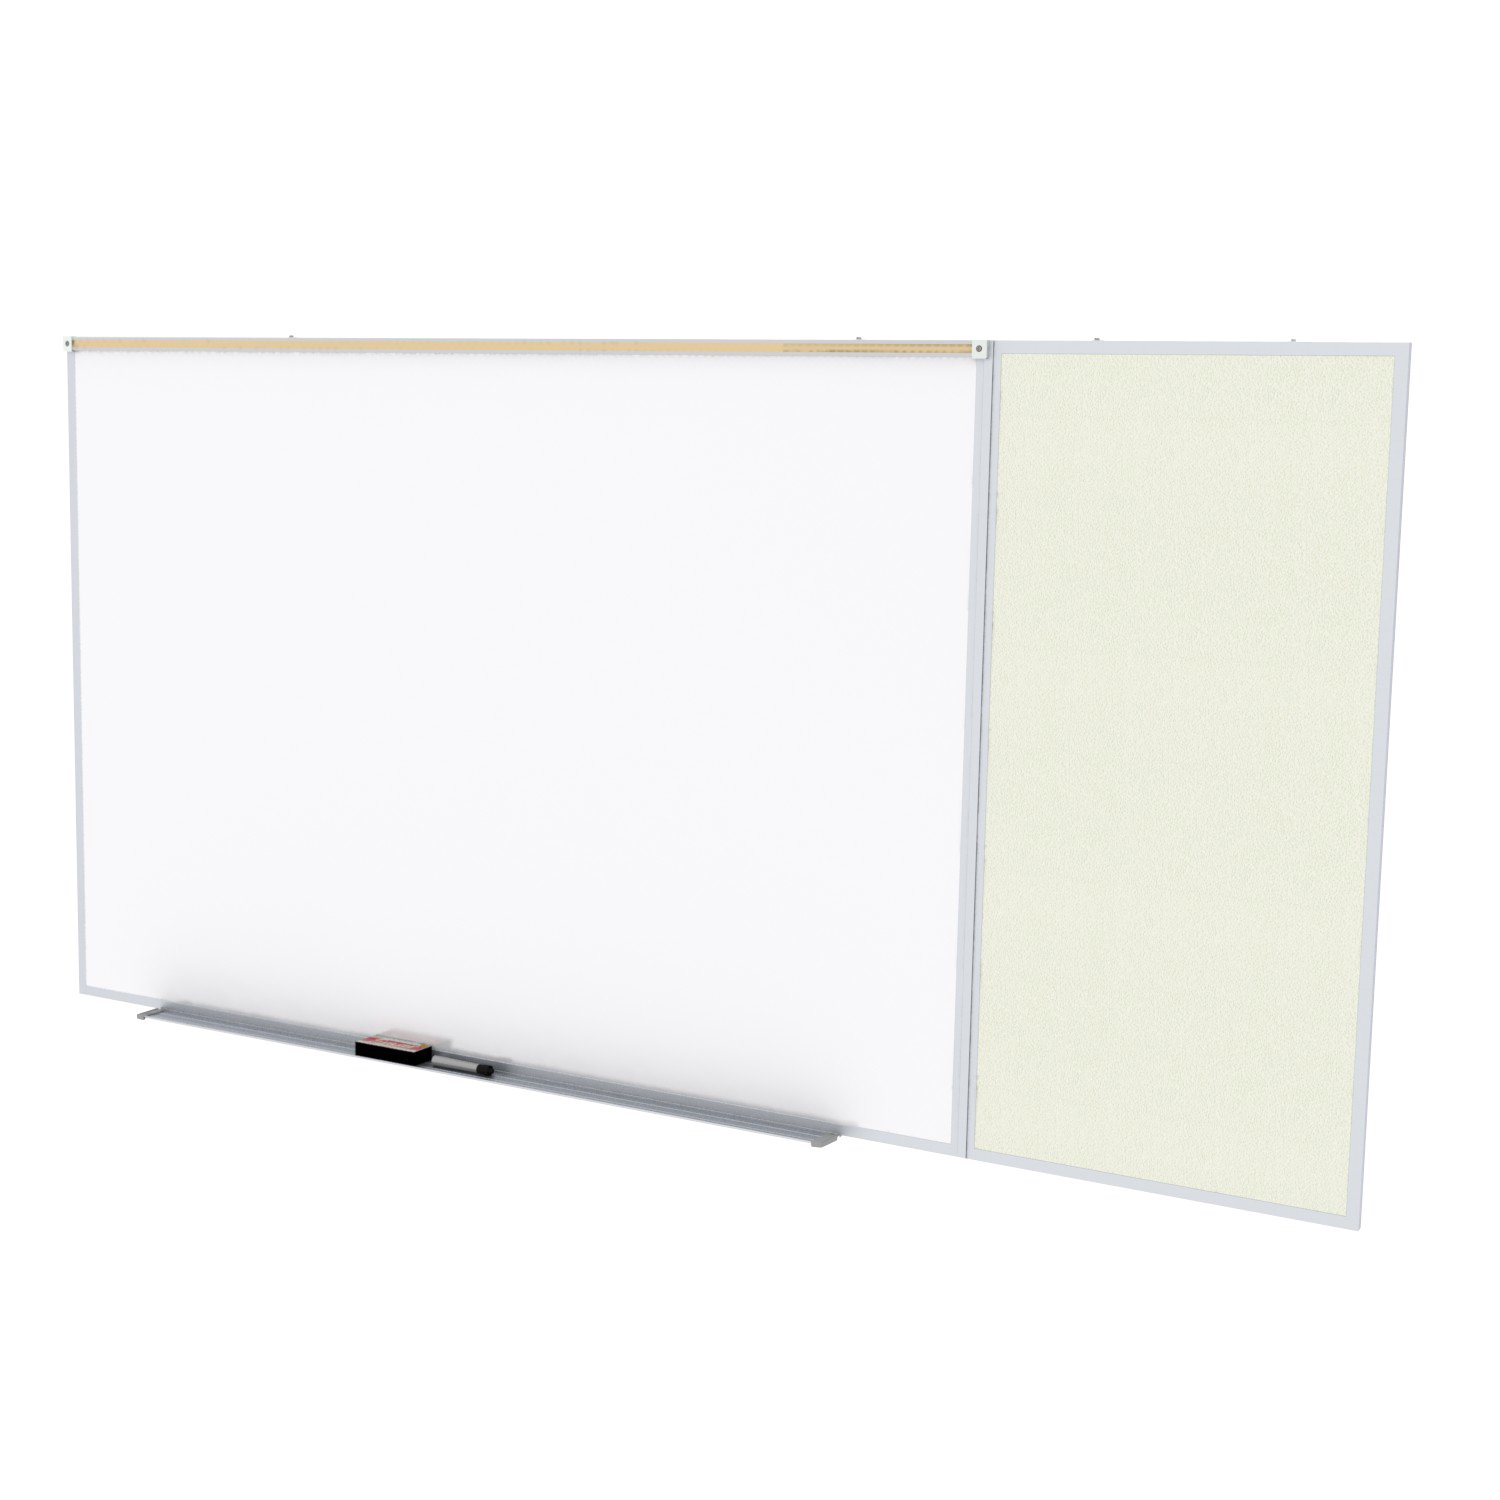 Ghent Style C 4 x 16 Feet Combination Board, Porcelain Magnetic Whiteboard and Vinyl Fabric Bulletin Board, Ivory , Made in the USA